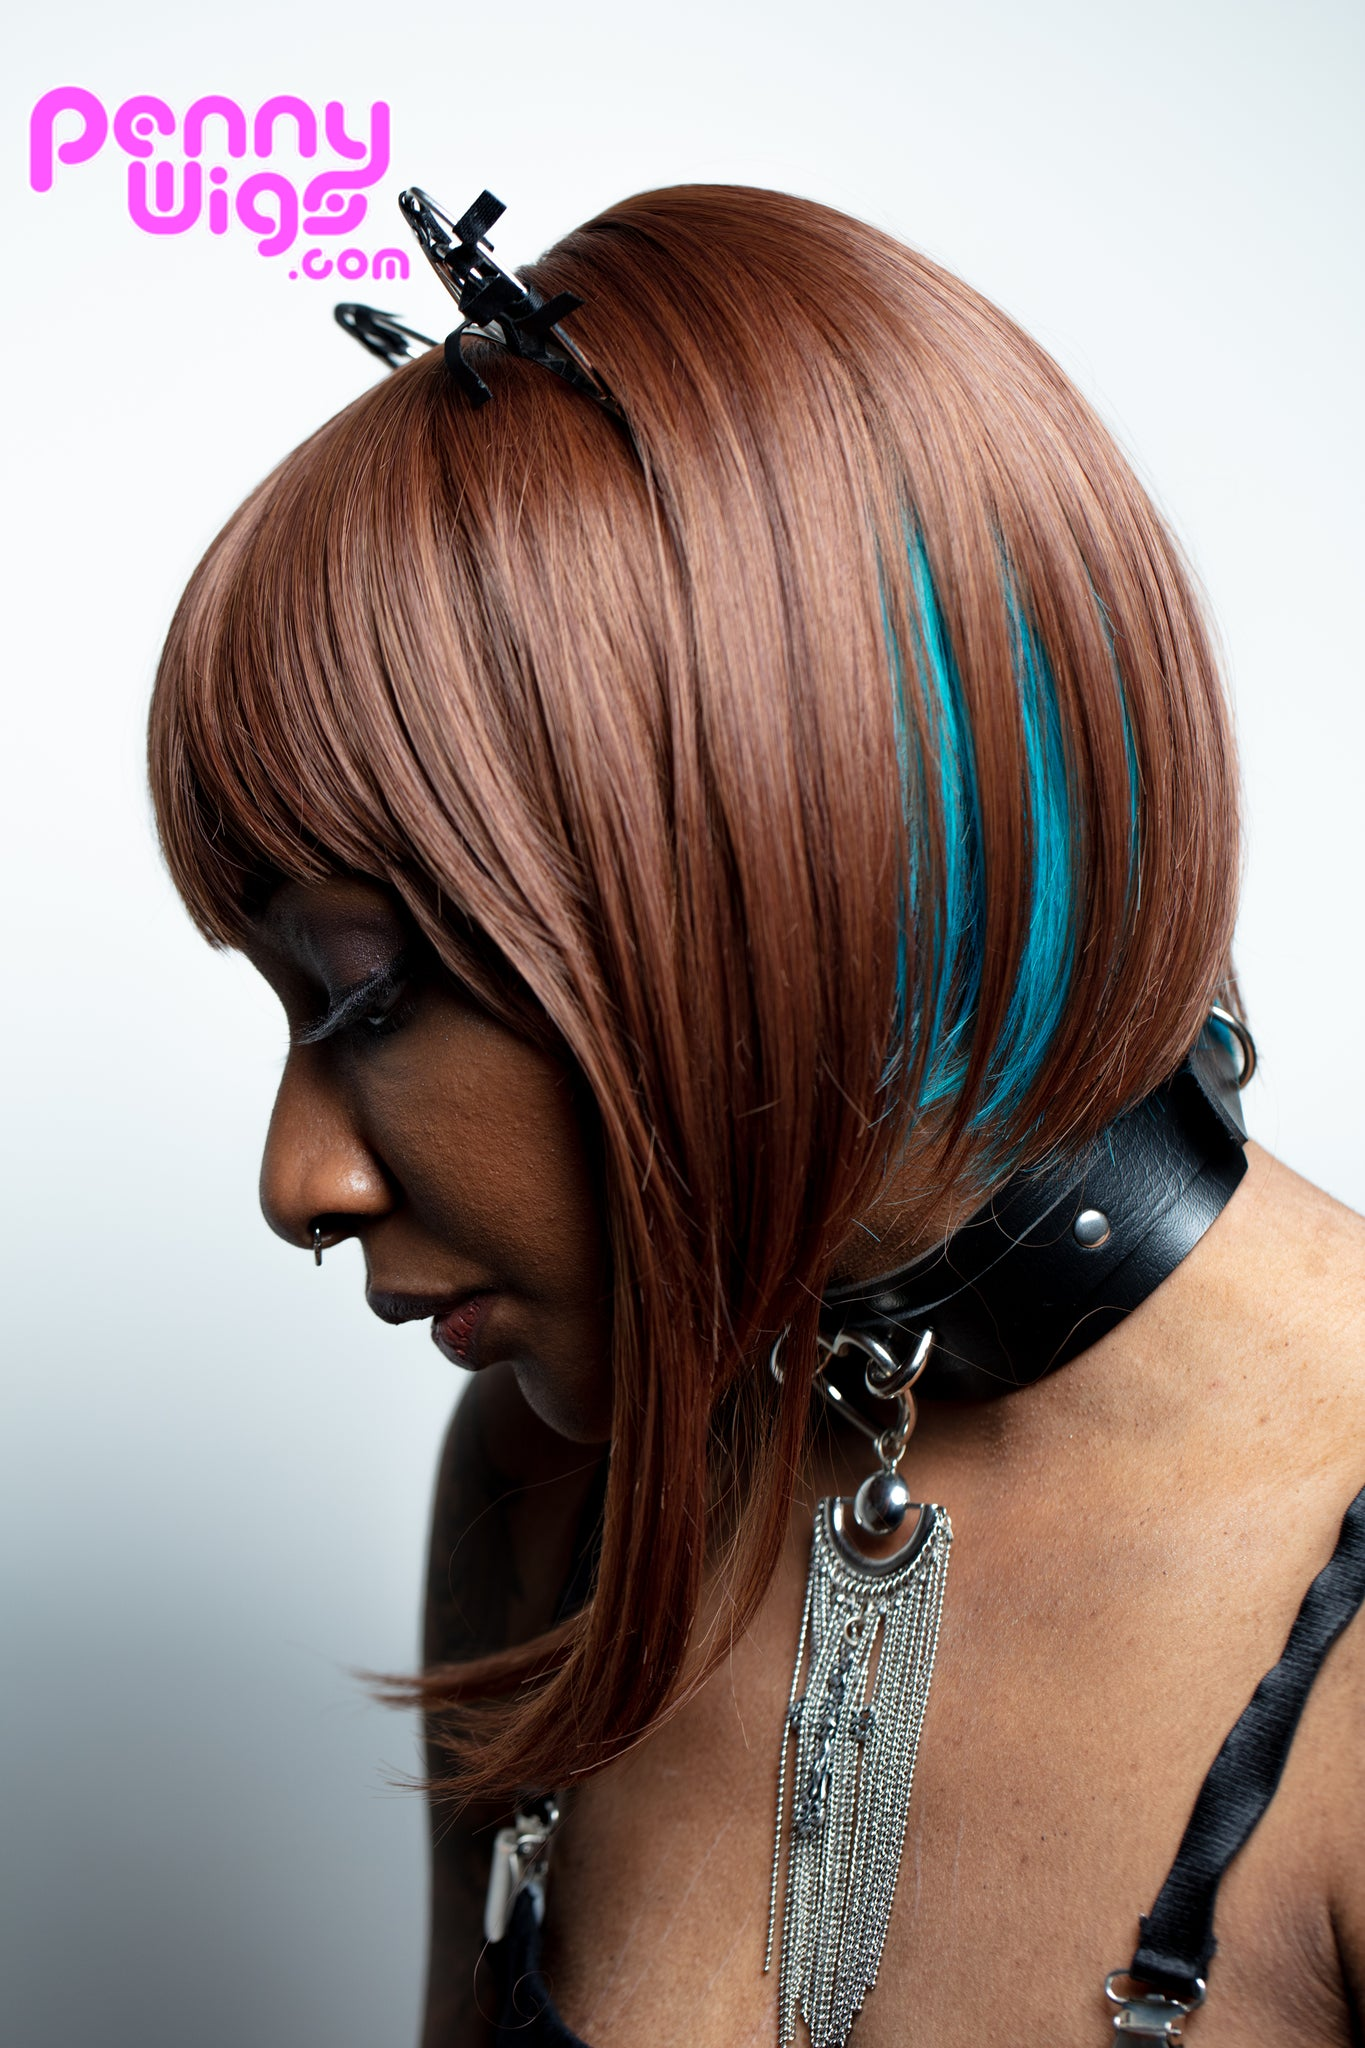 Vilana - Teal/Brown Full Wig - Penny Dreads & Wigs